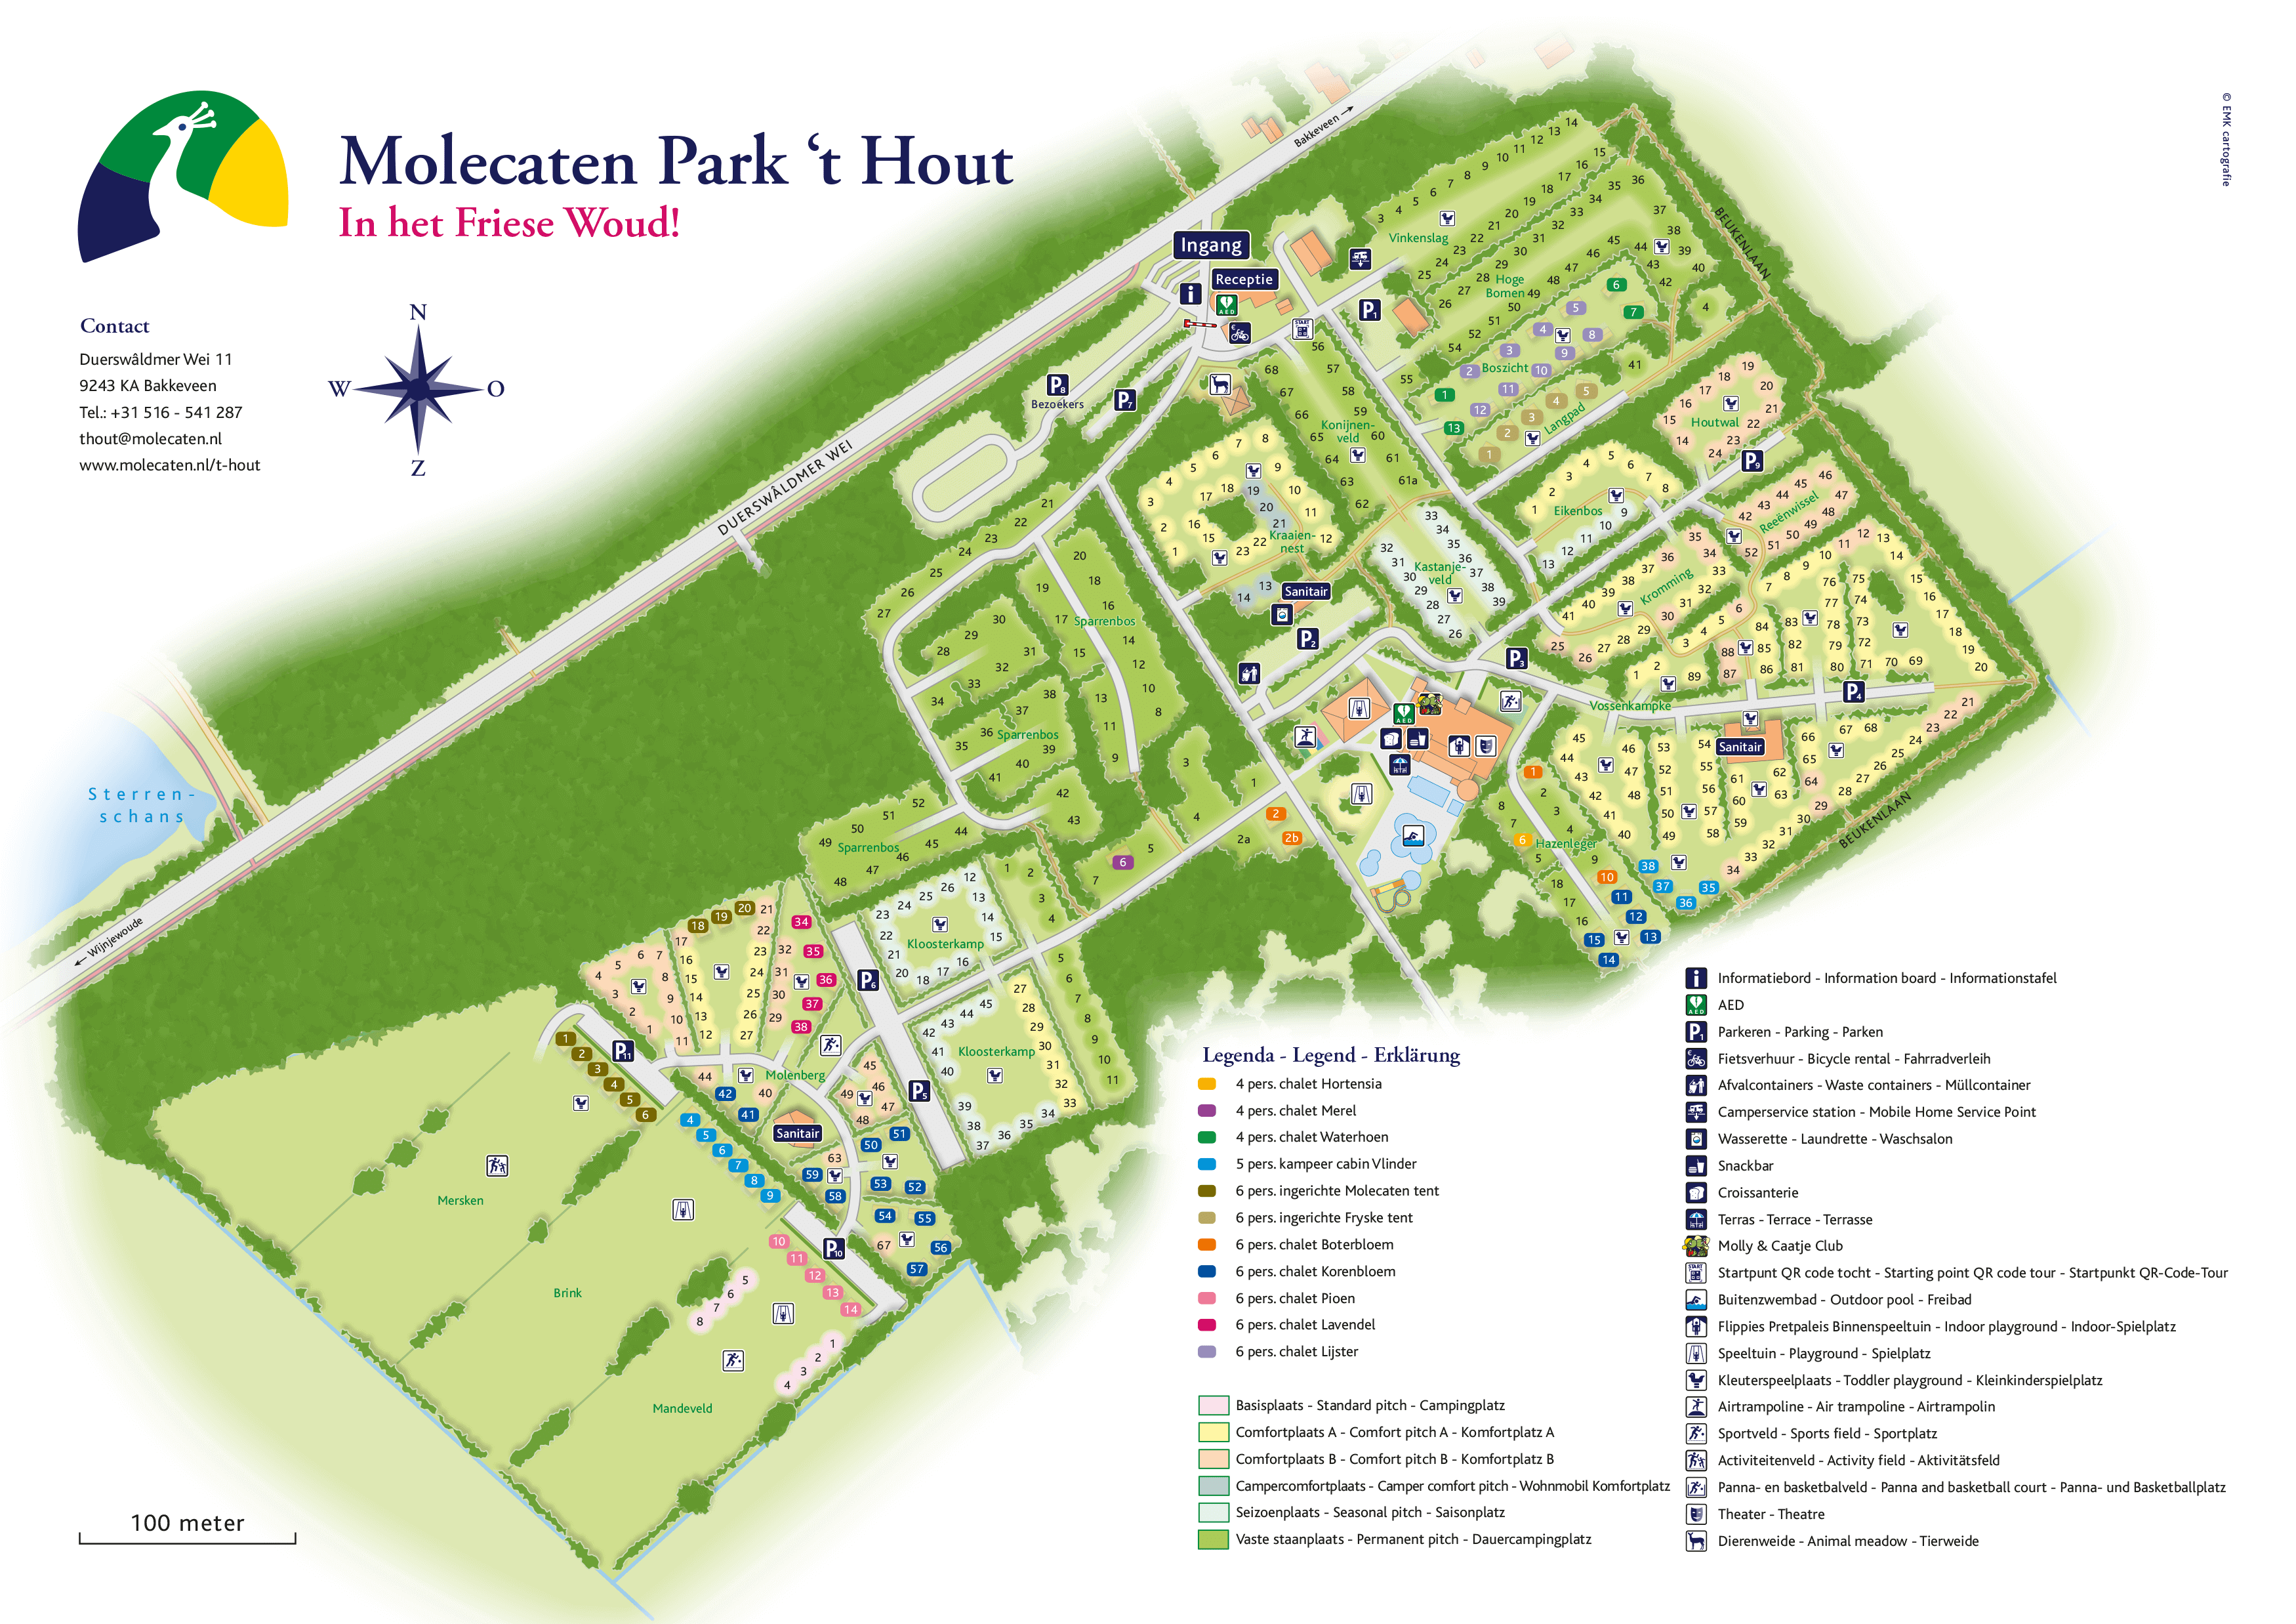 Molecaten Park 't Hout accommodation.parkmap.alttext